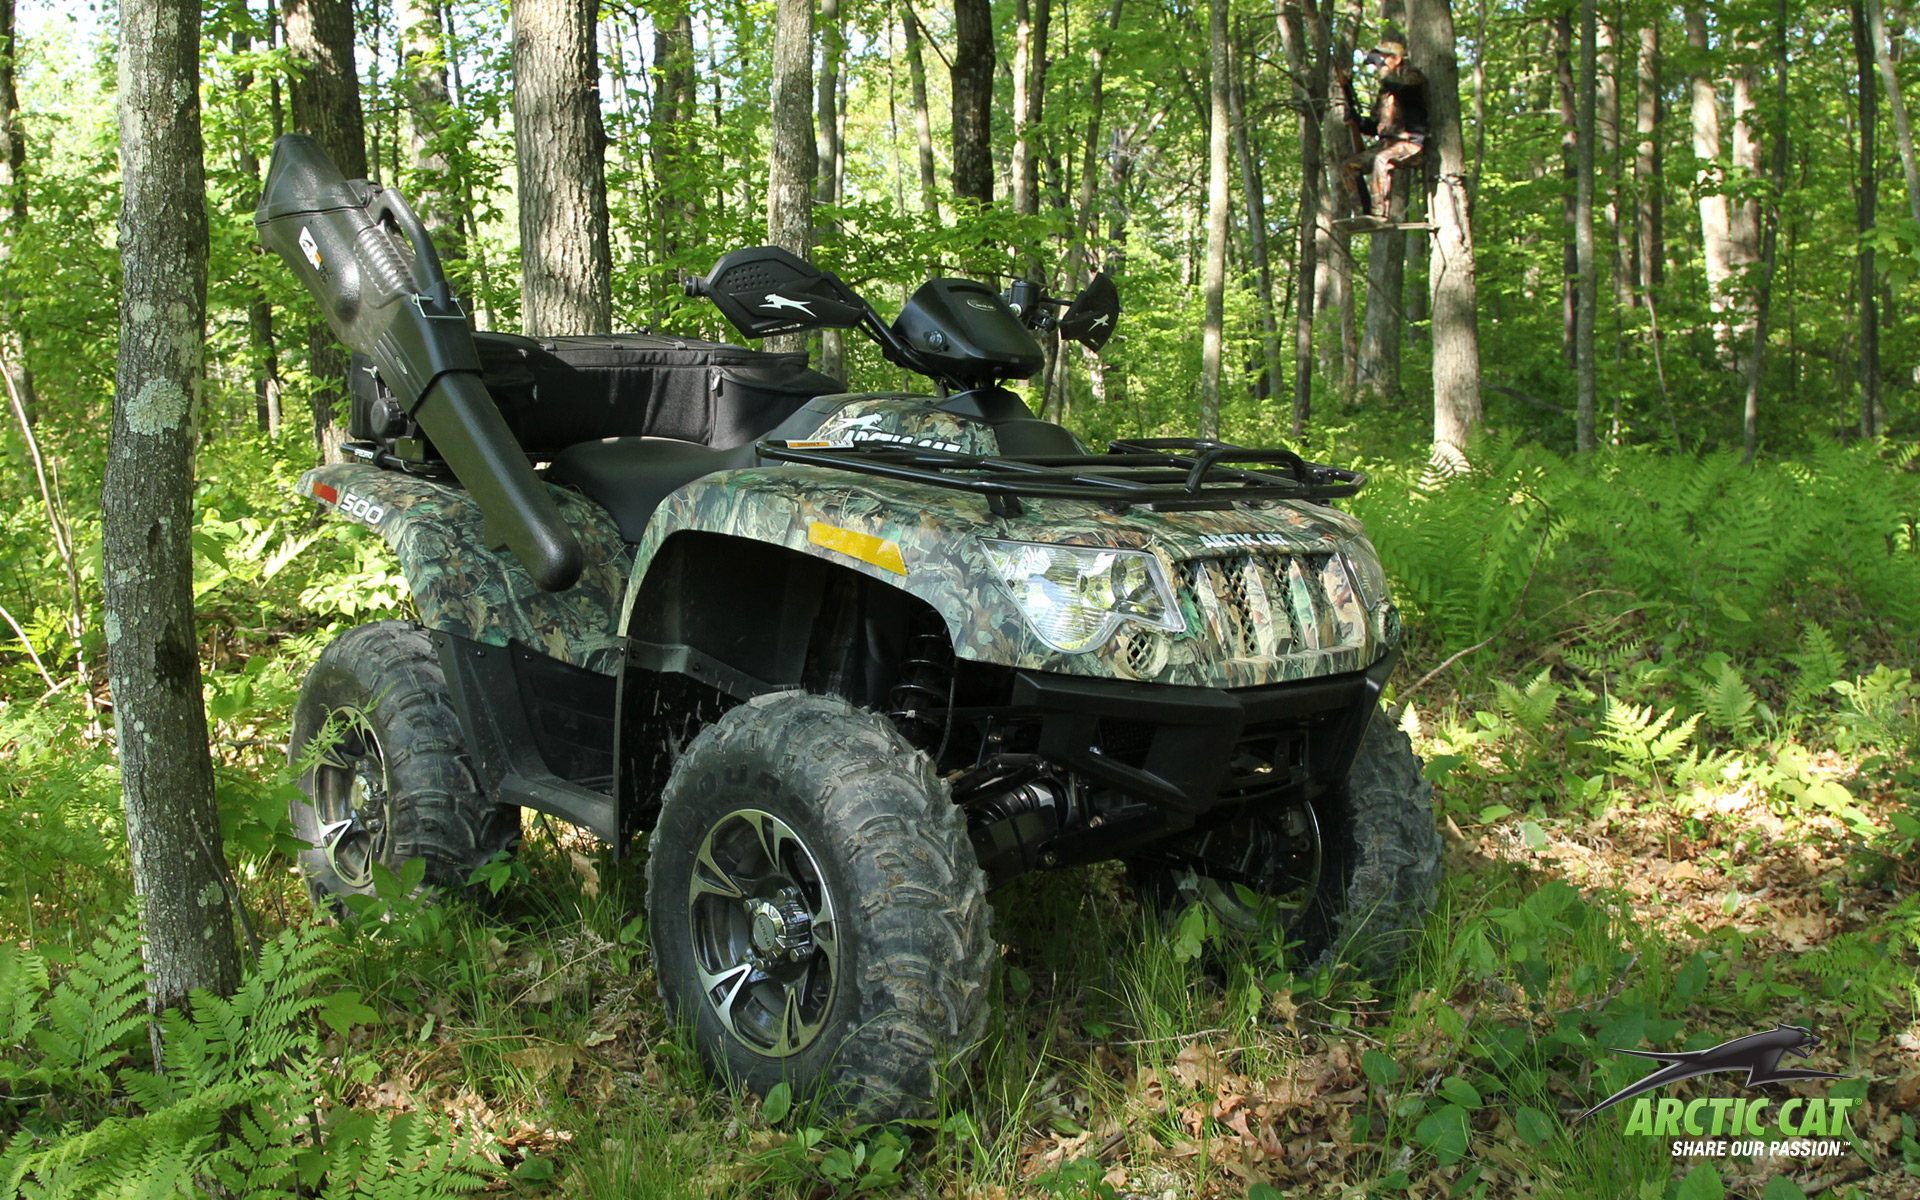 2013 Arctic Cat 500 Xt The Tough Middleweight Atv For